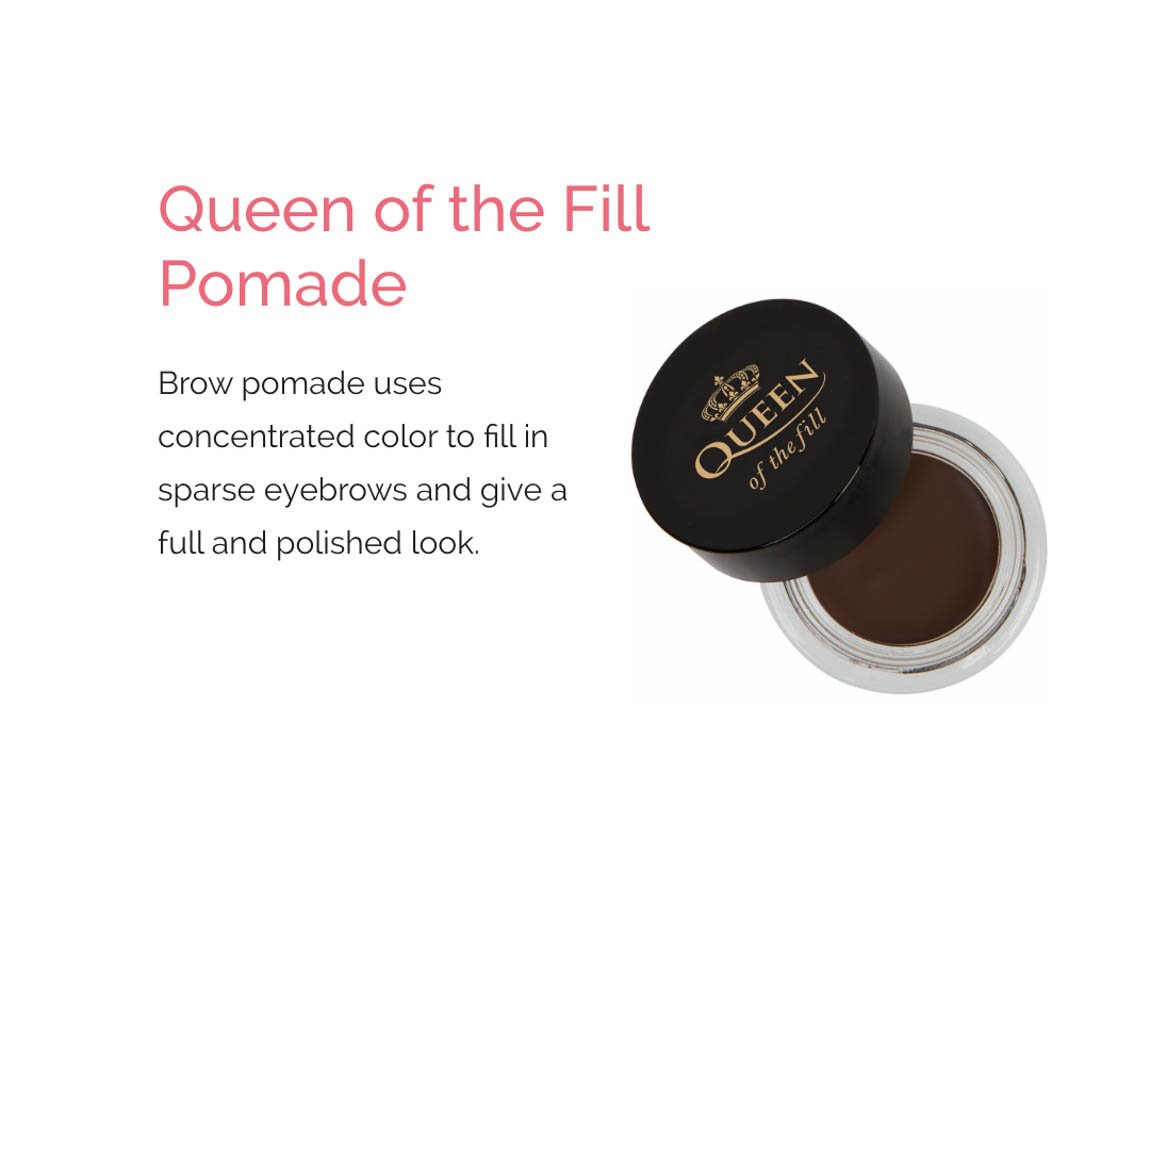 Queen of the Fill Brow Pomade